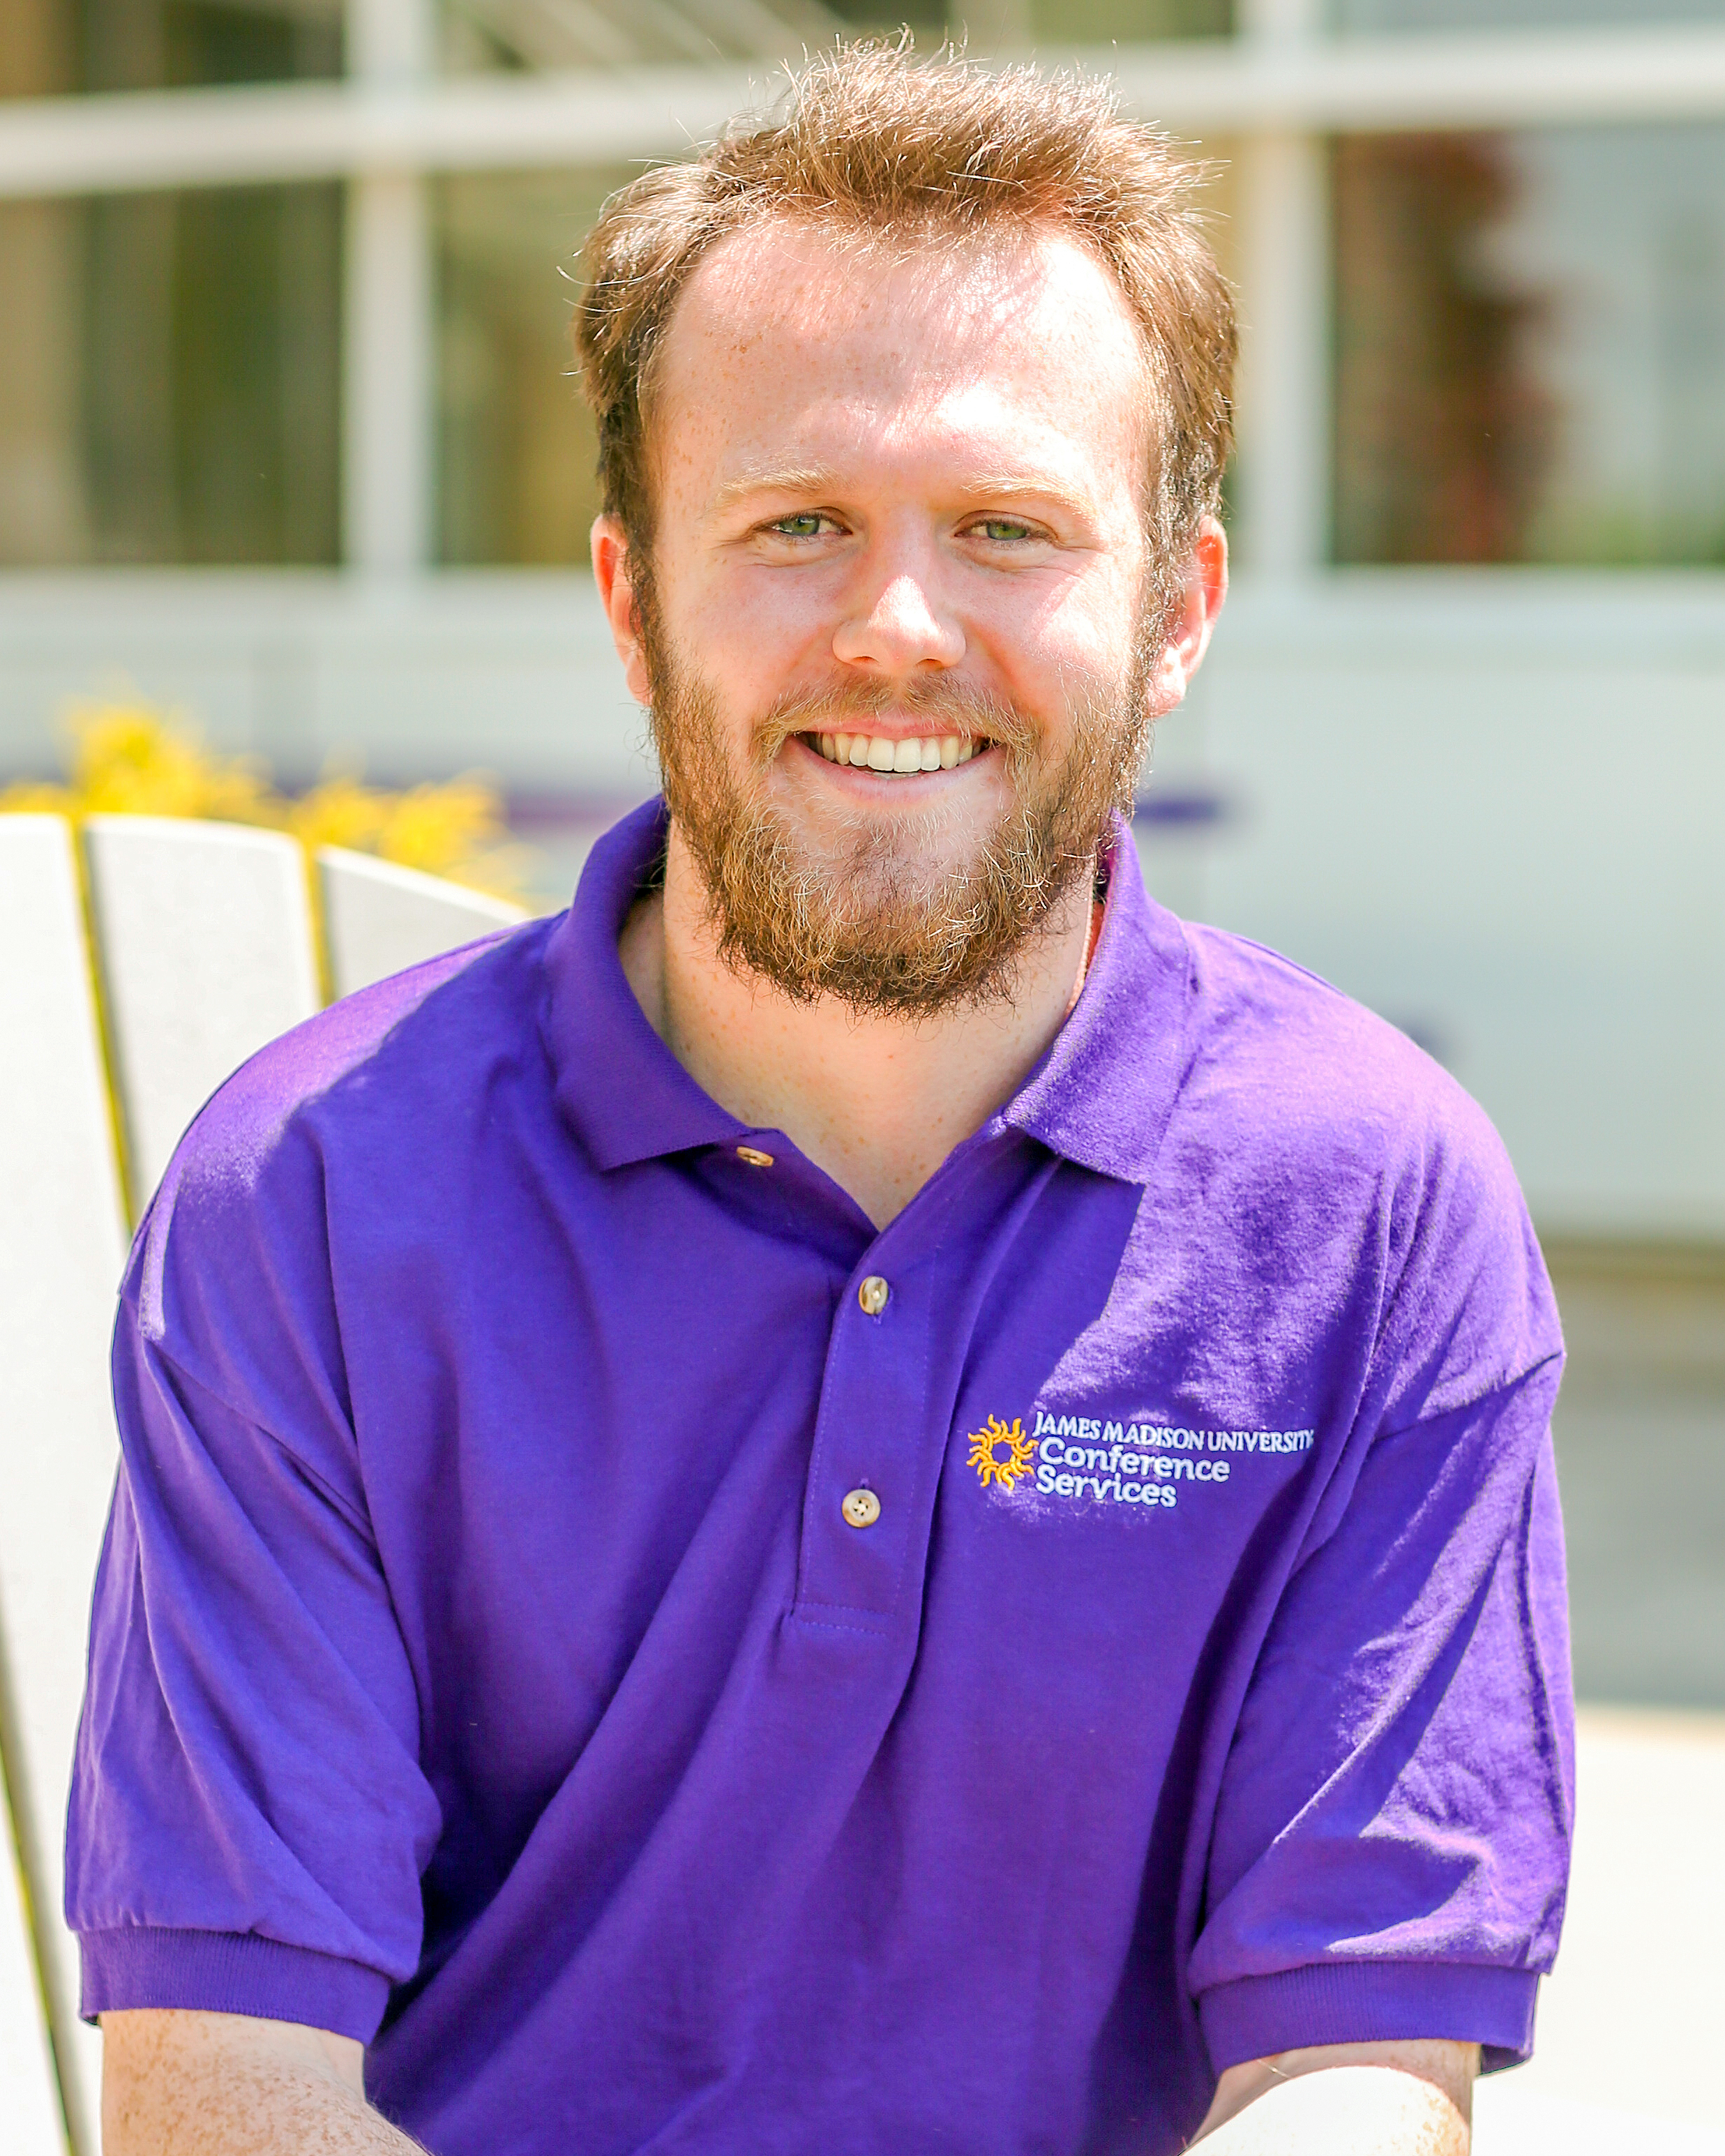 Photo of Kevin Dannaher, Summer Staff